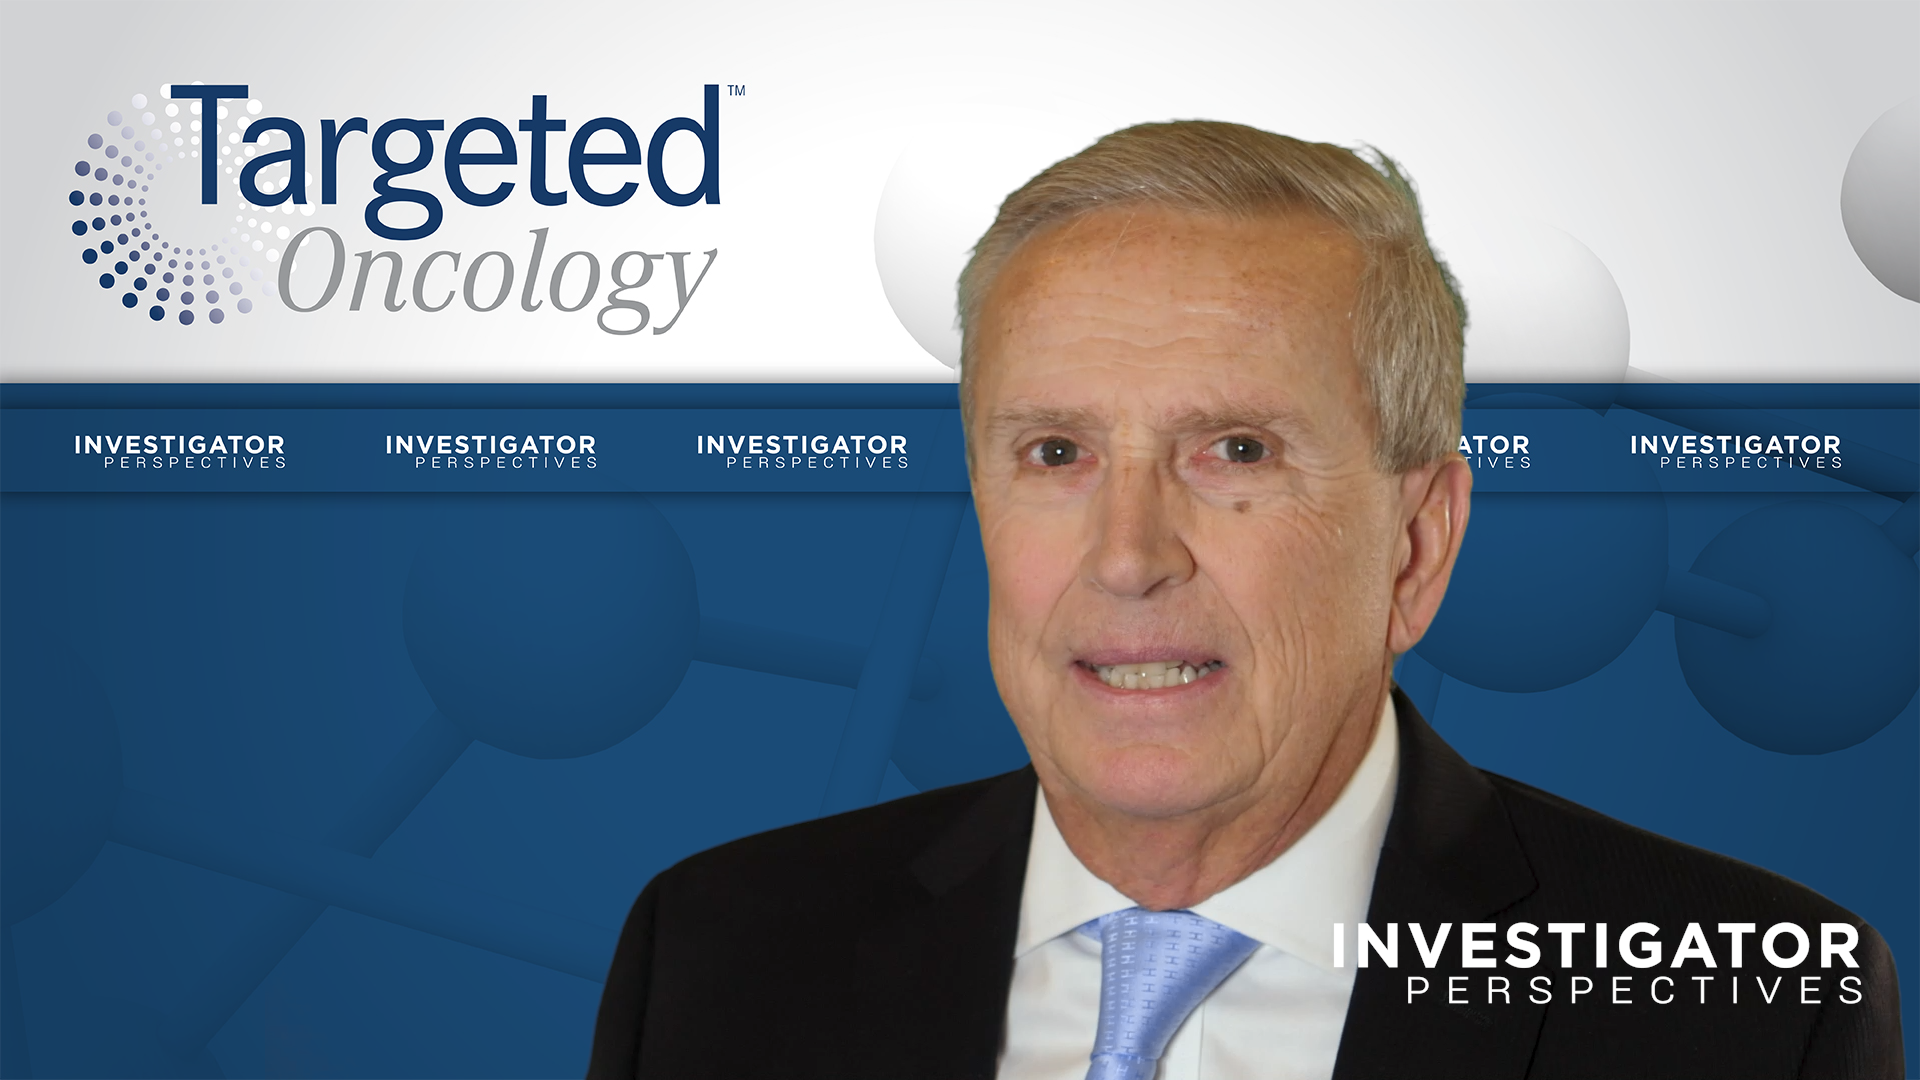 Therapies Under Investigation for GVHD